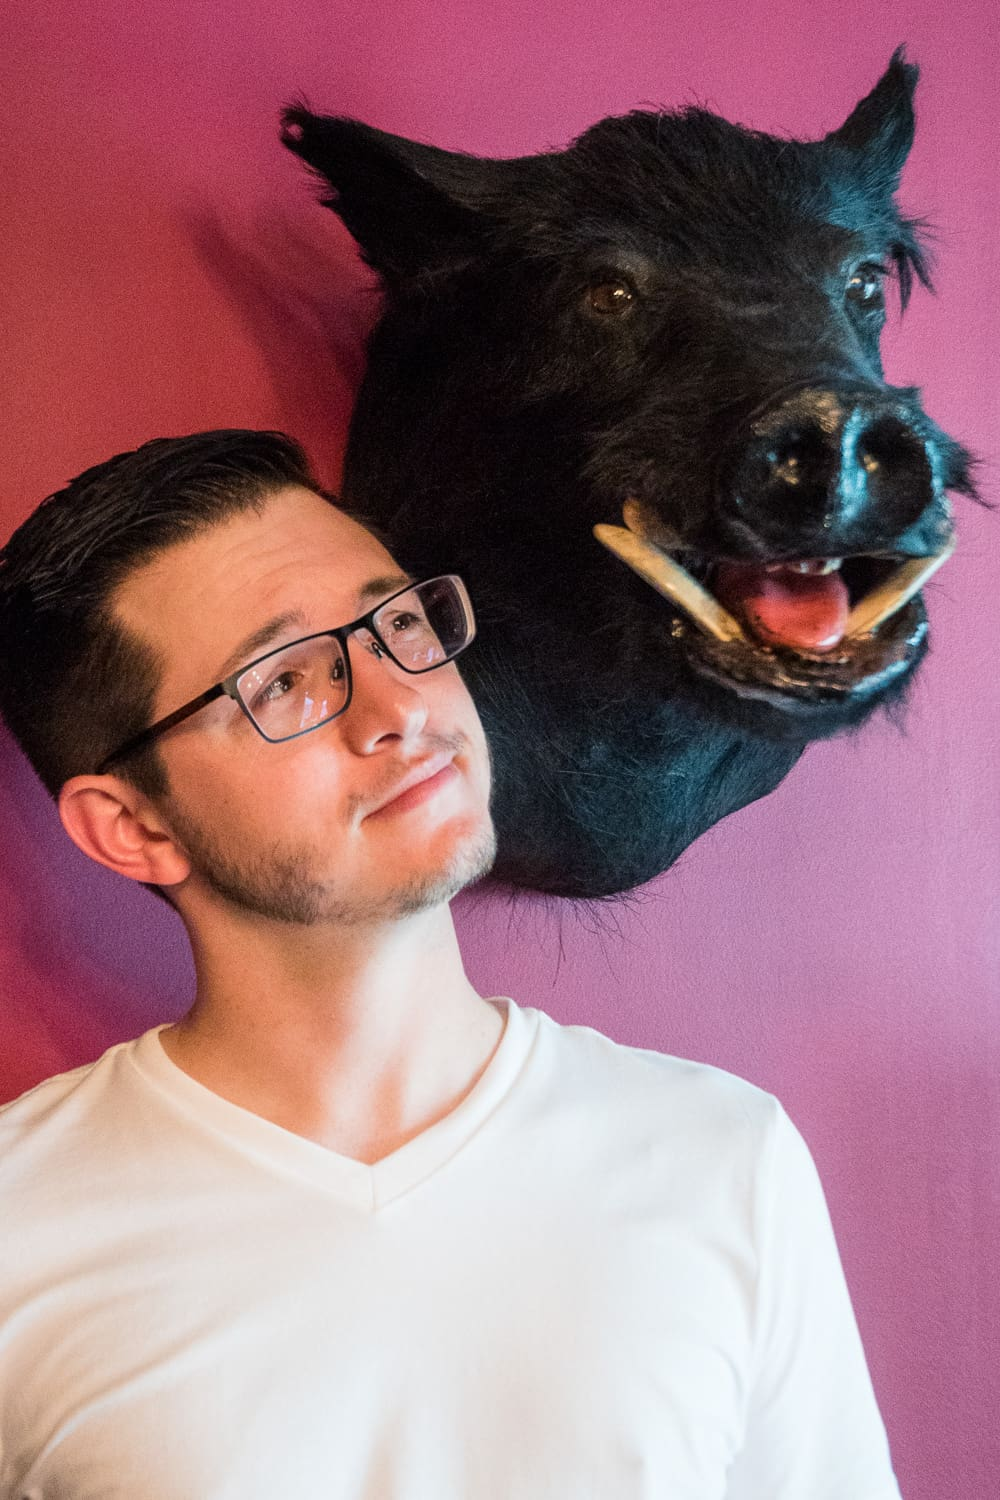 a groom standing next to a boars head mounted on the wall.